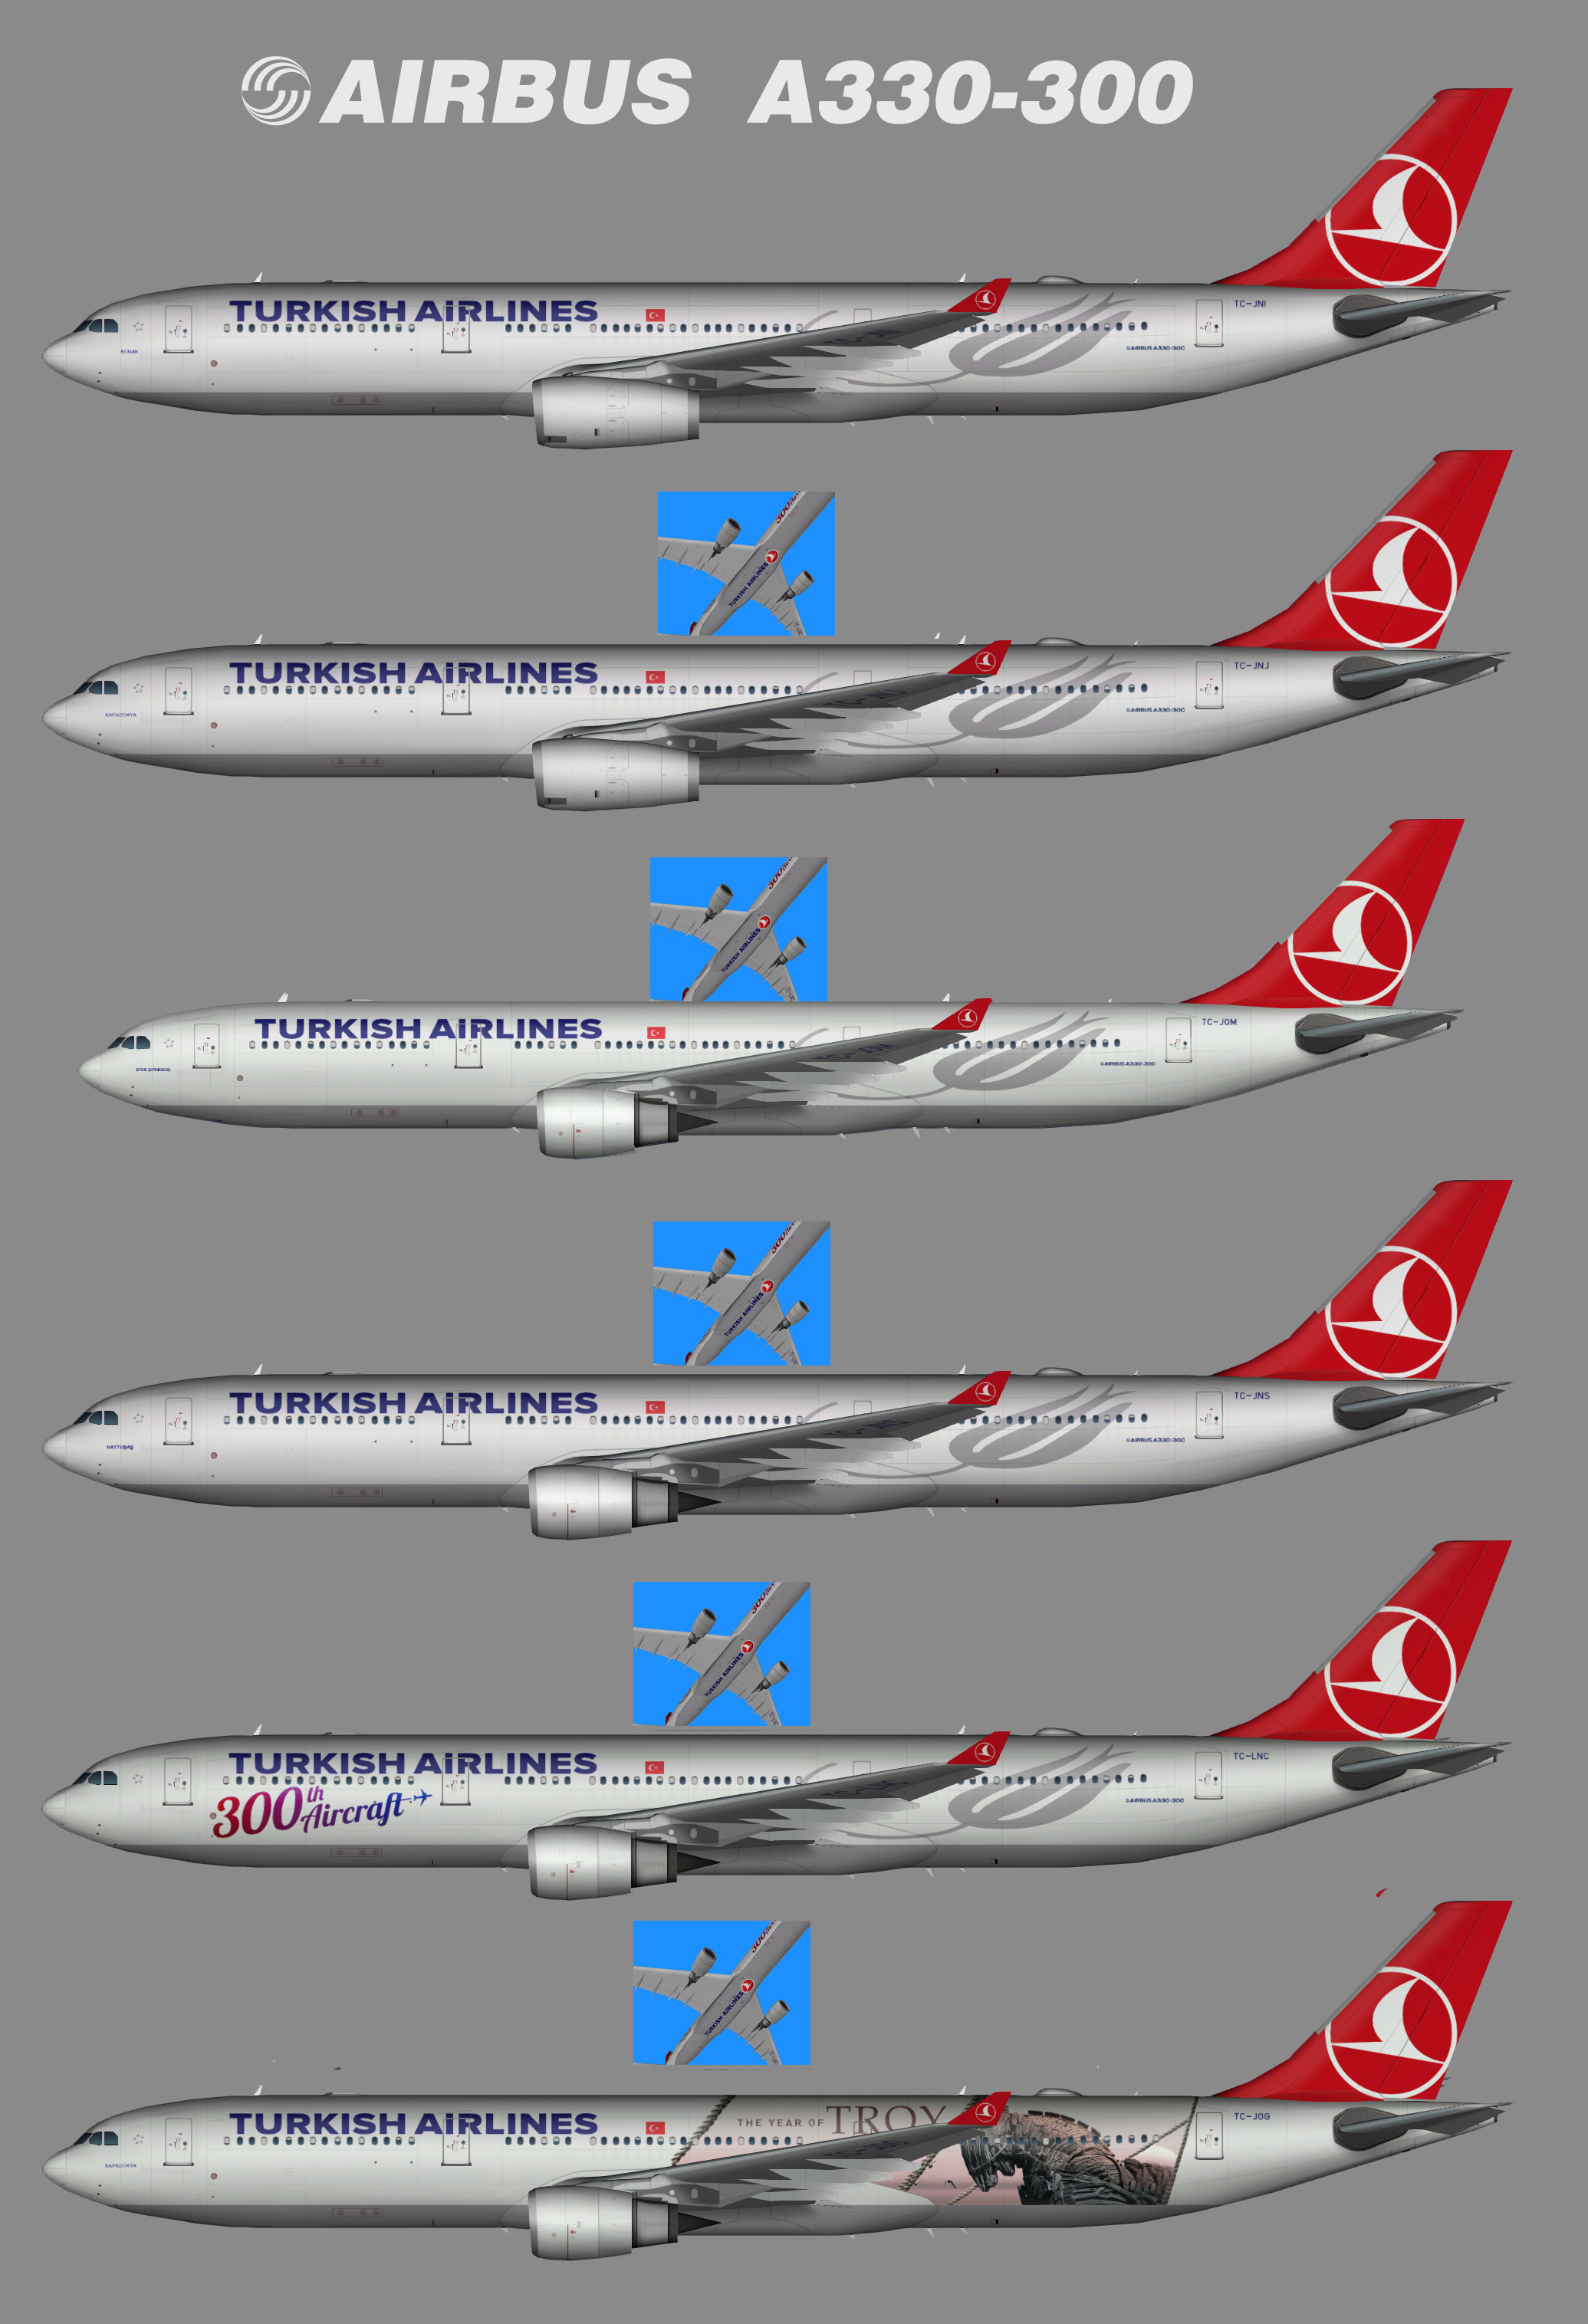 Turkish Airlines A330-300